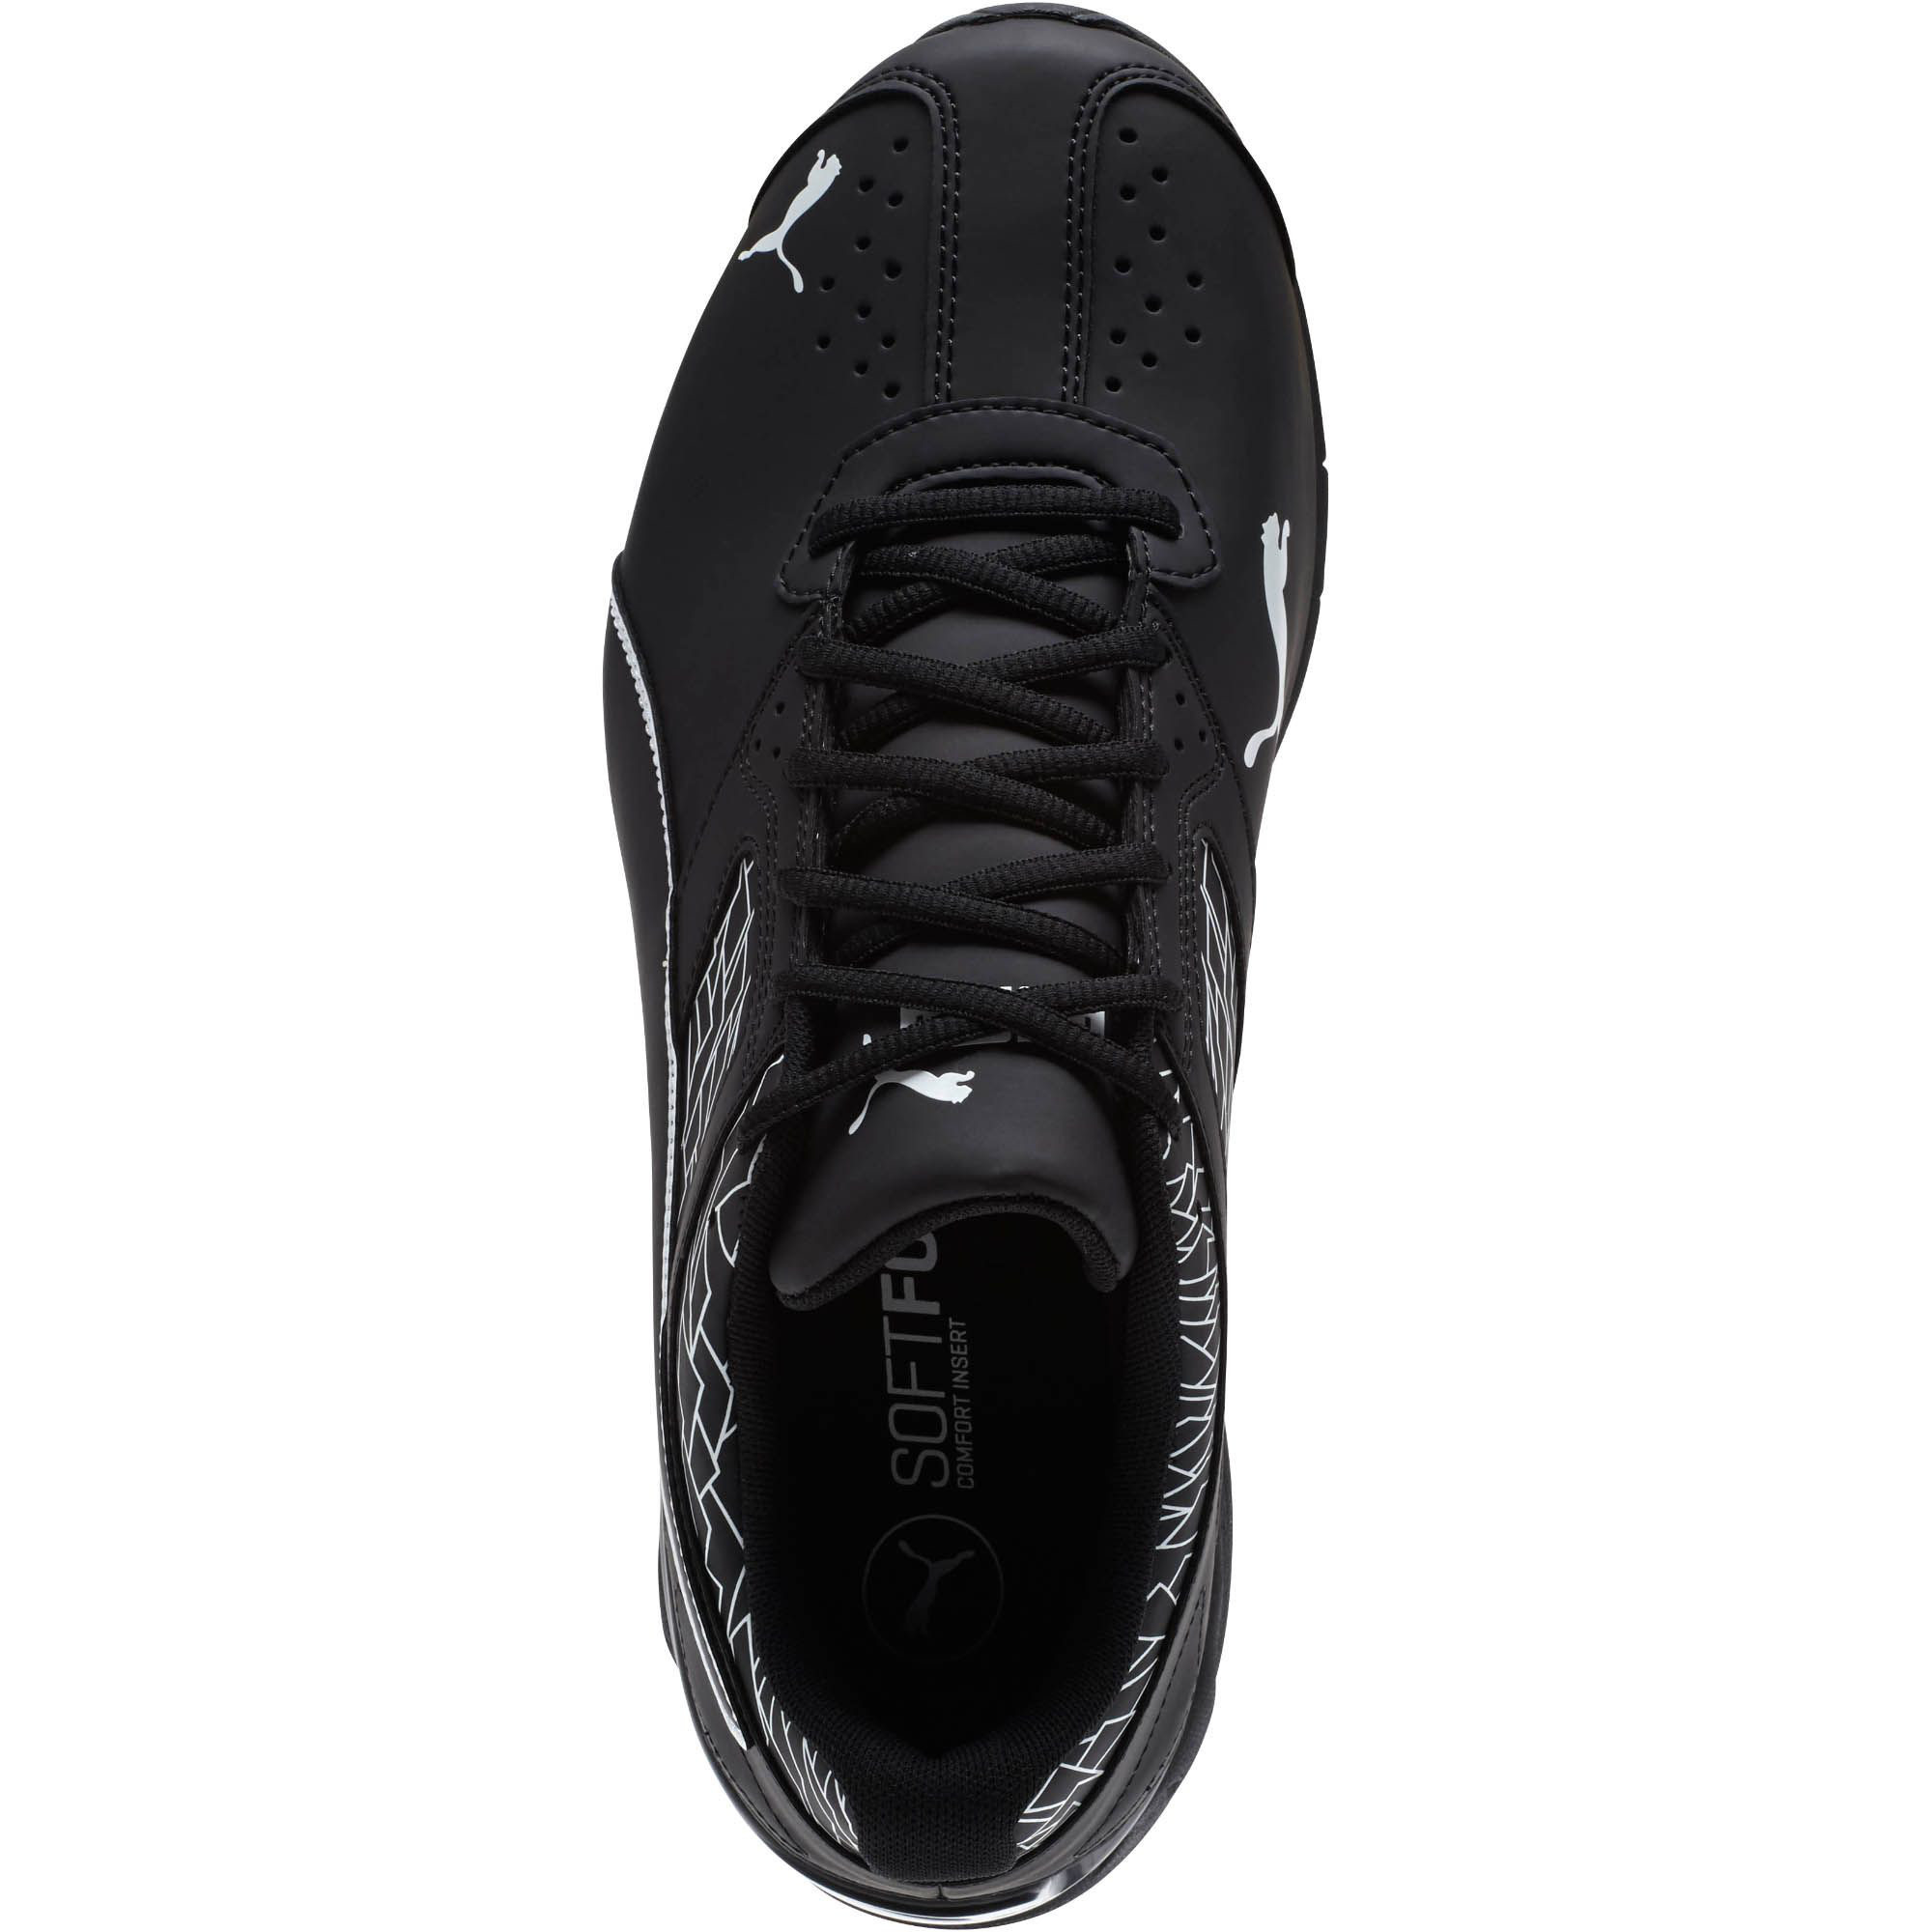 PUMA-Tazon-6-Fracture-FM-Men-039-s-Sneakers-Men-Shoe-Running thumbnail 6